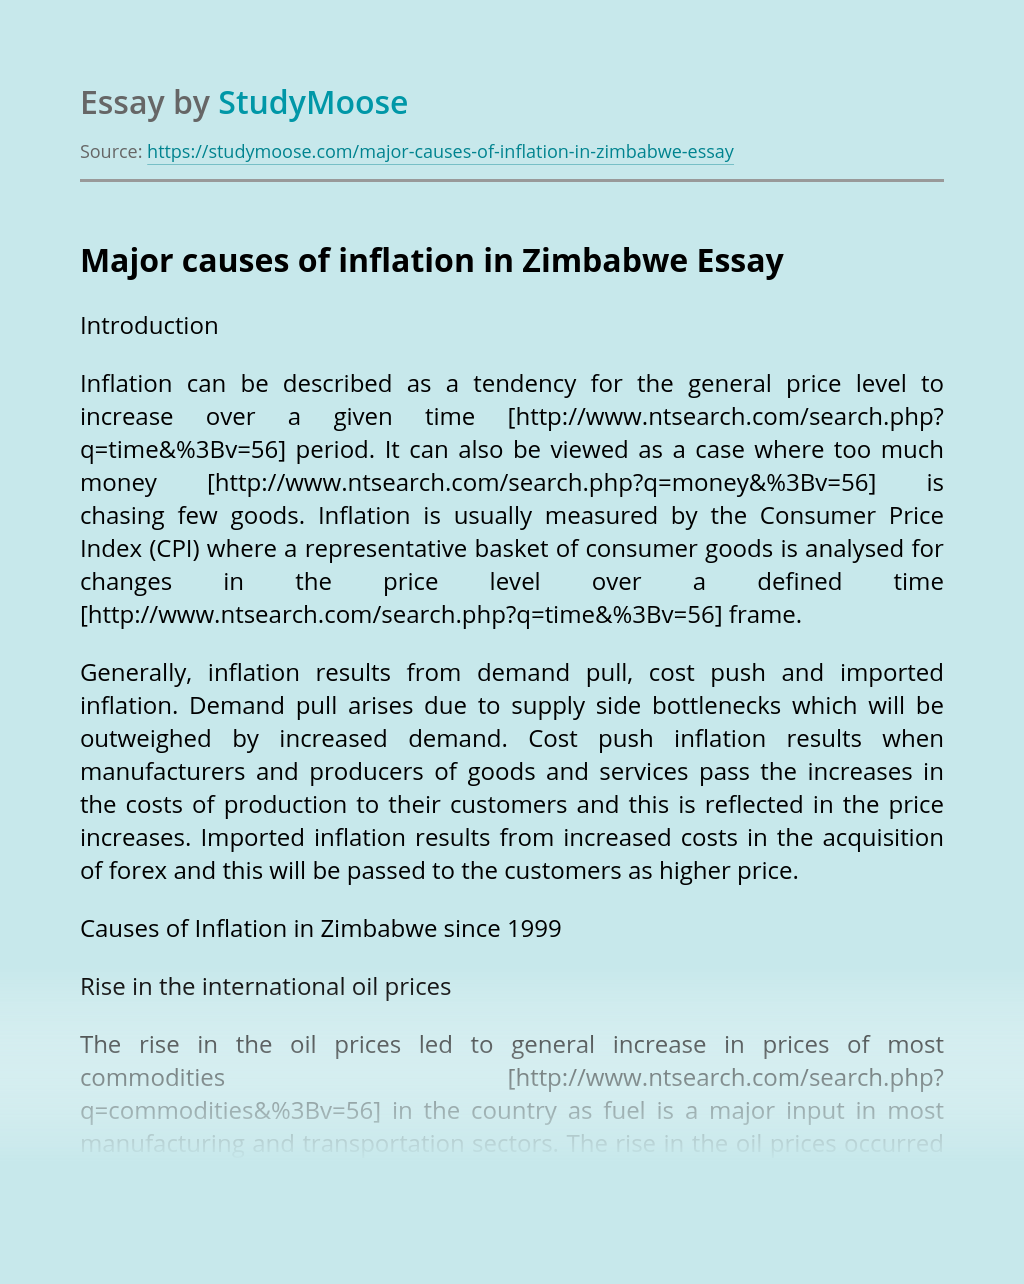 Major causes of inflation in Zimbabwe